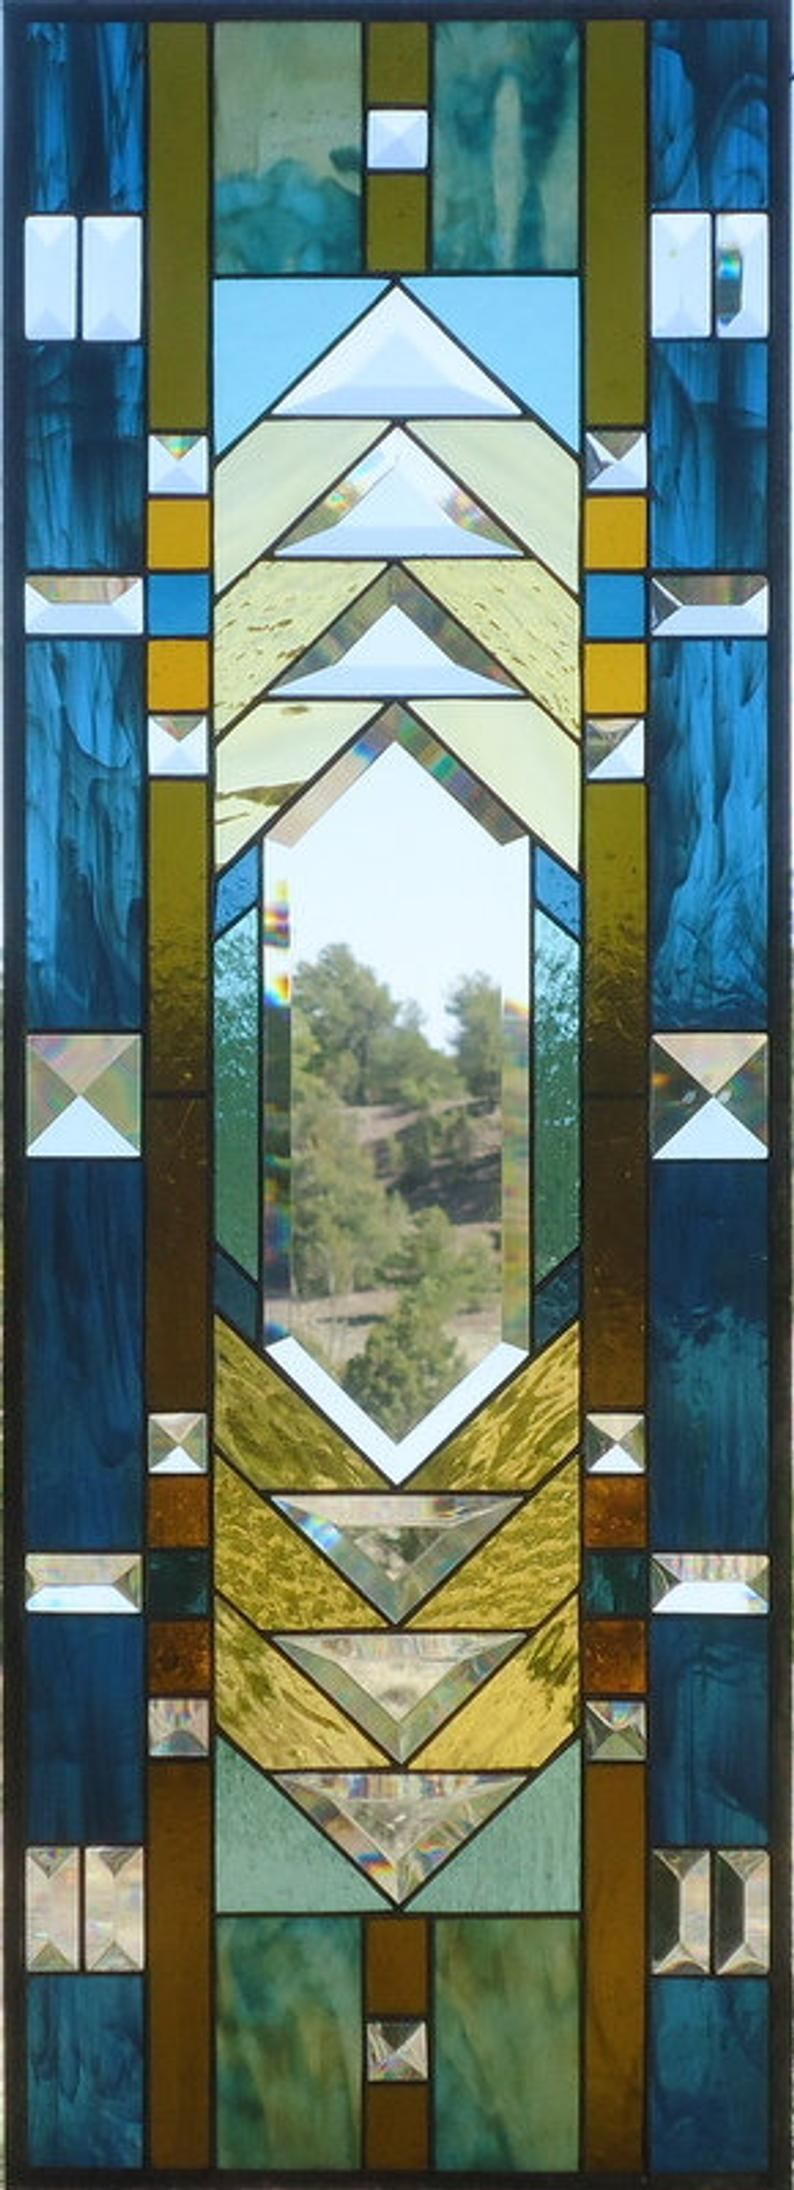 Stained Glass Window Panel Prairie Arts Crafts Prairie Stained Glass Transom Stained Glass Transom Flw Style 12 3 8 X 34 3 8 In 2020 Stained Glass Windows Stained Glass Stained Glass Circles